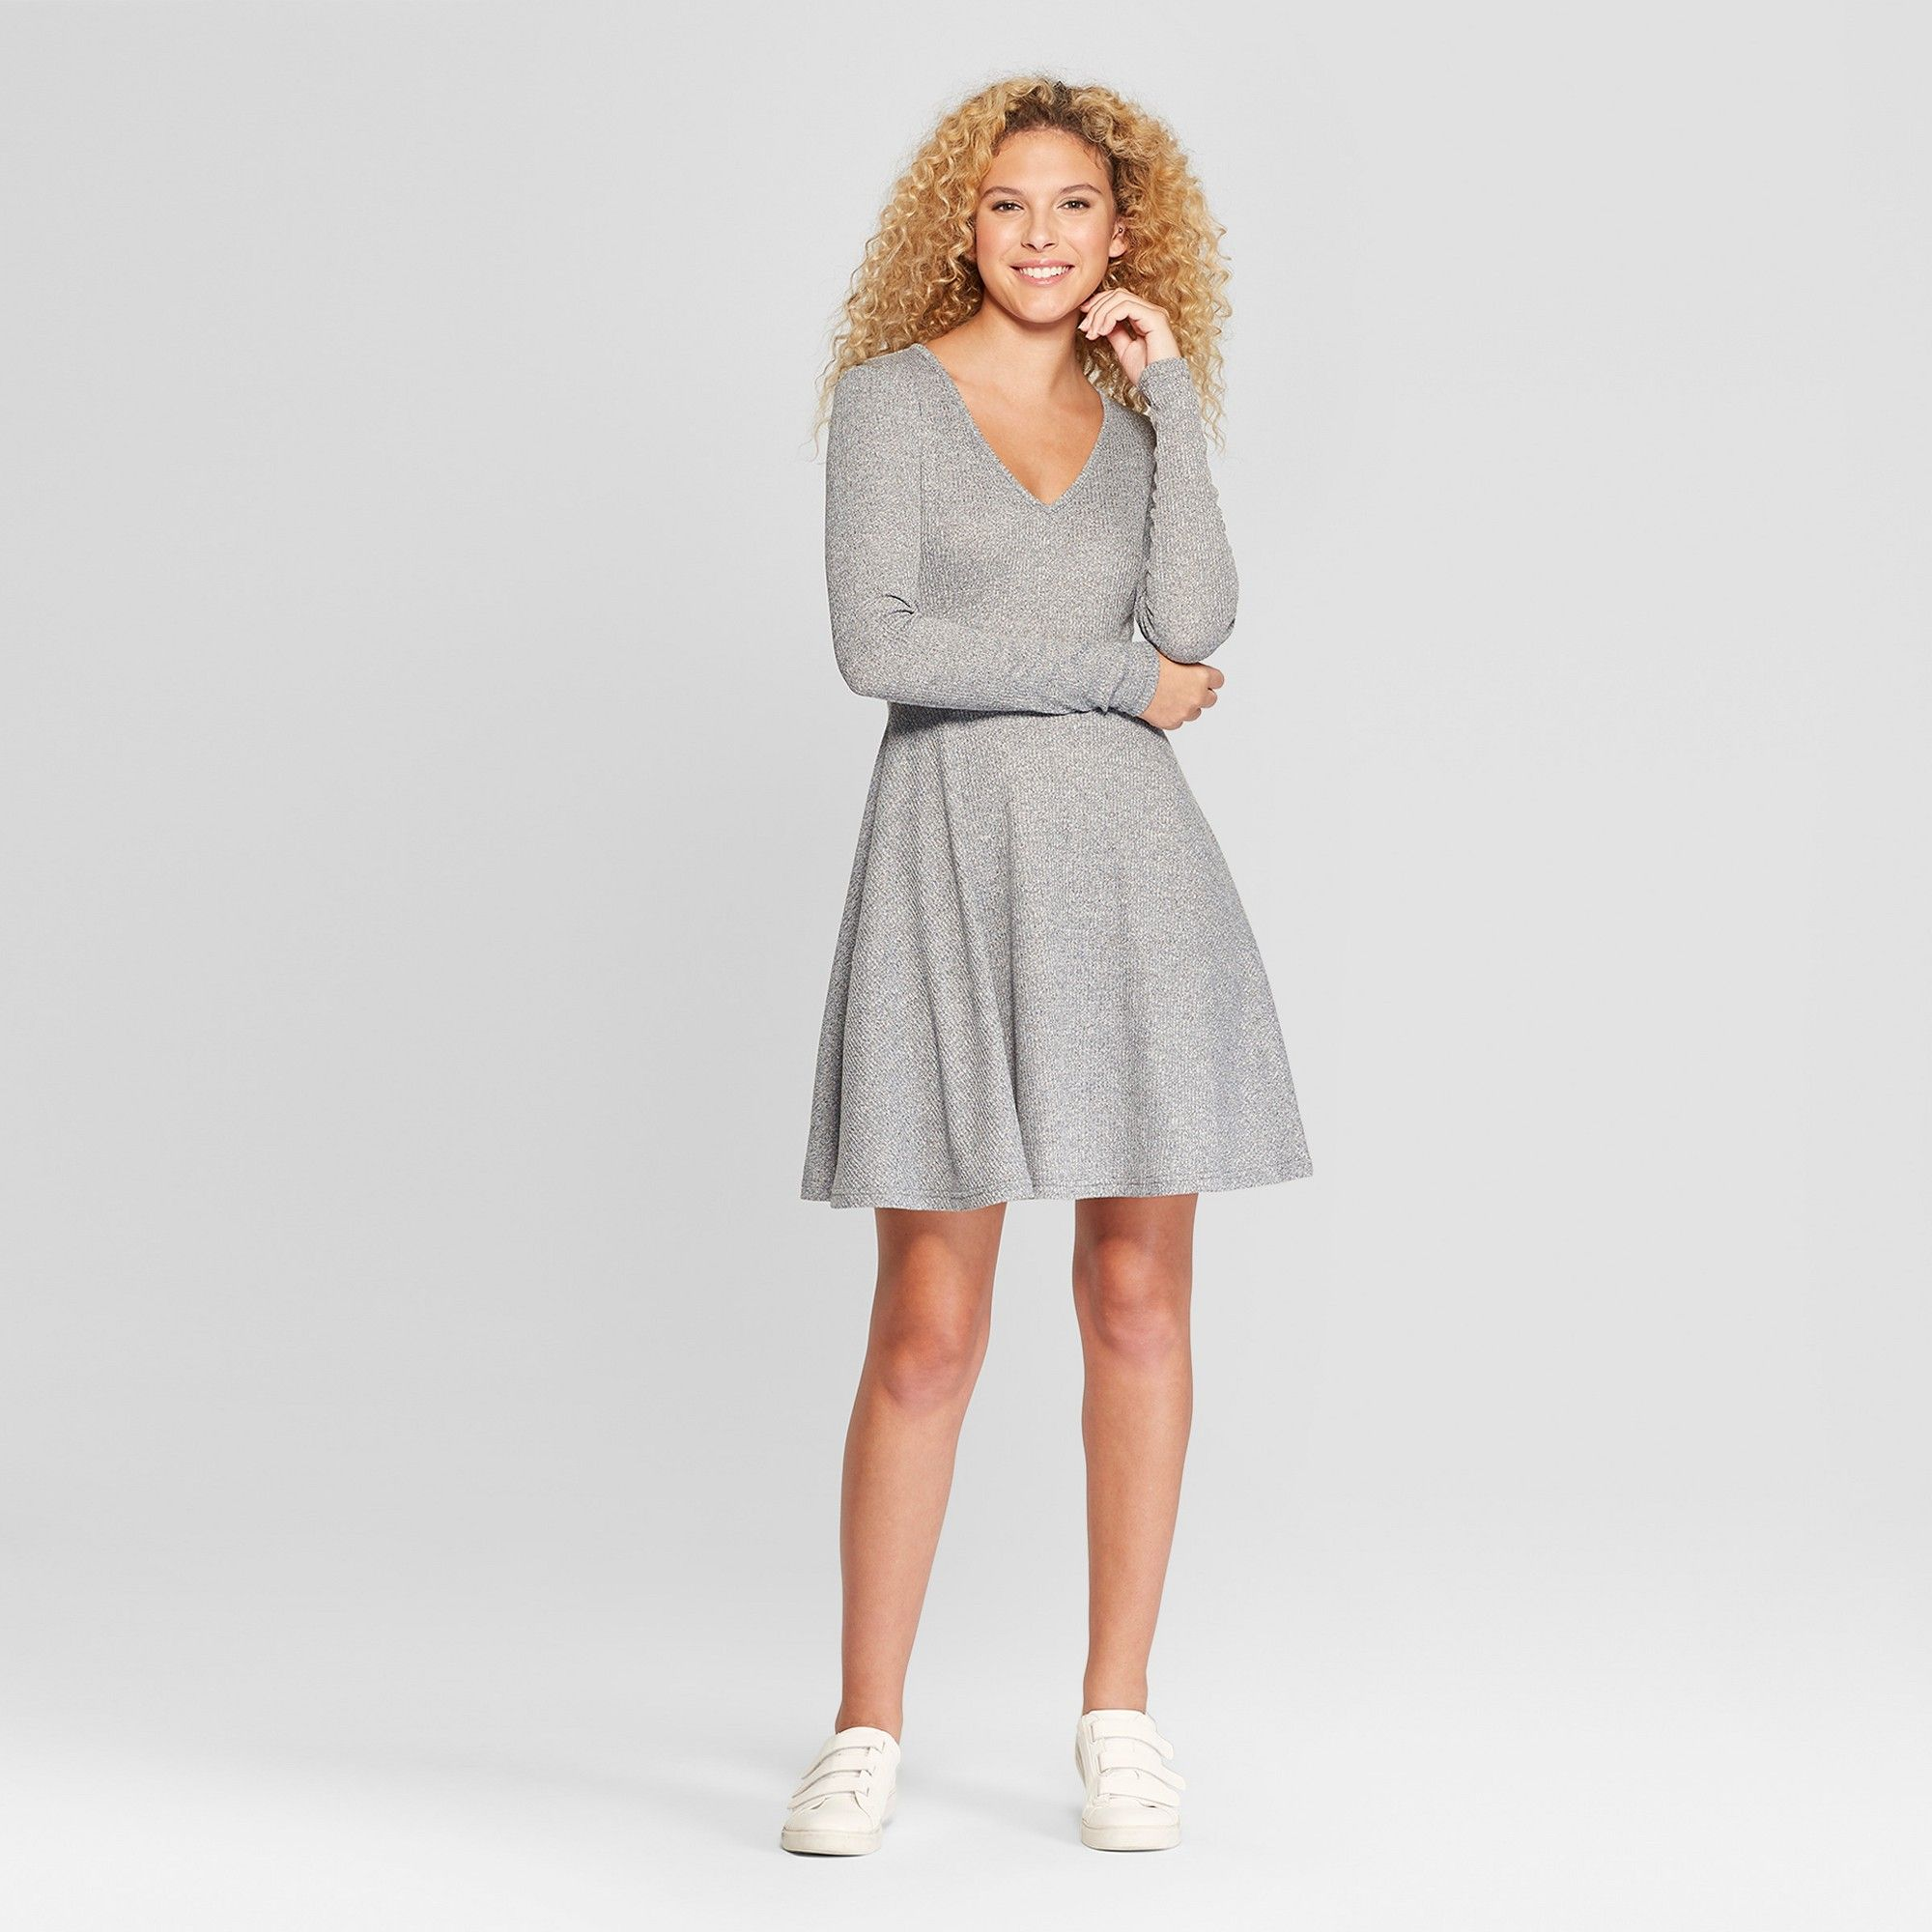 79a340499ff1 Women's Long Sleeve Rib Hacci Dress - Almost Famous (Juniors') Gray ...